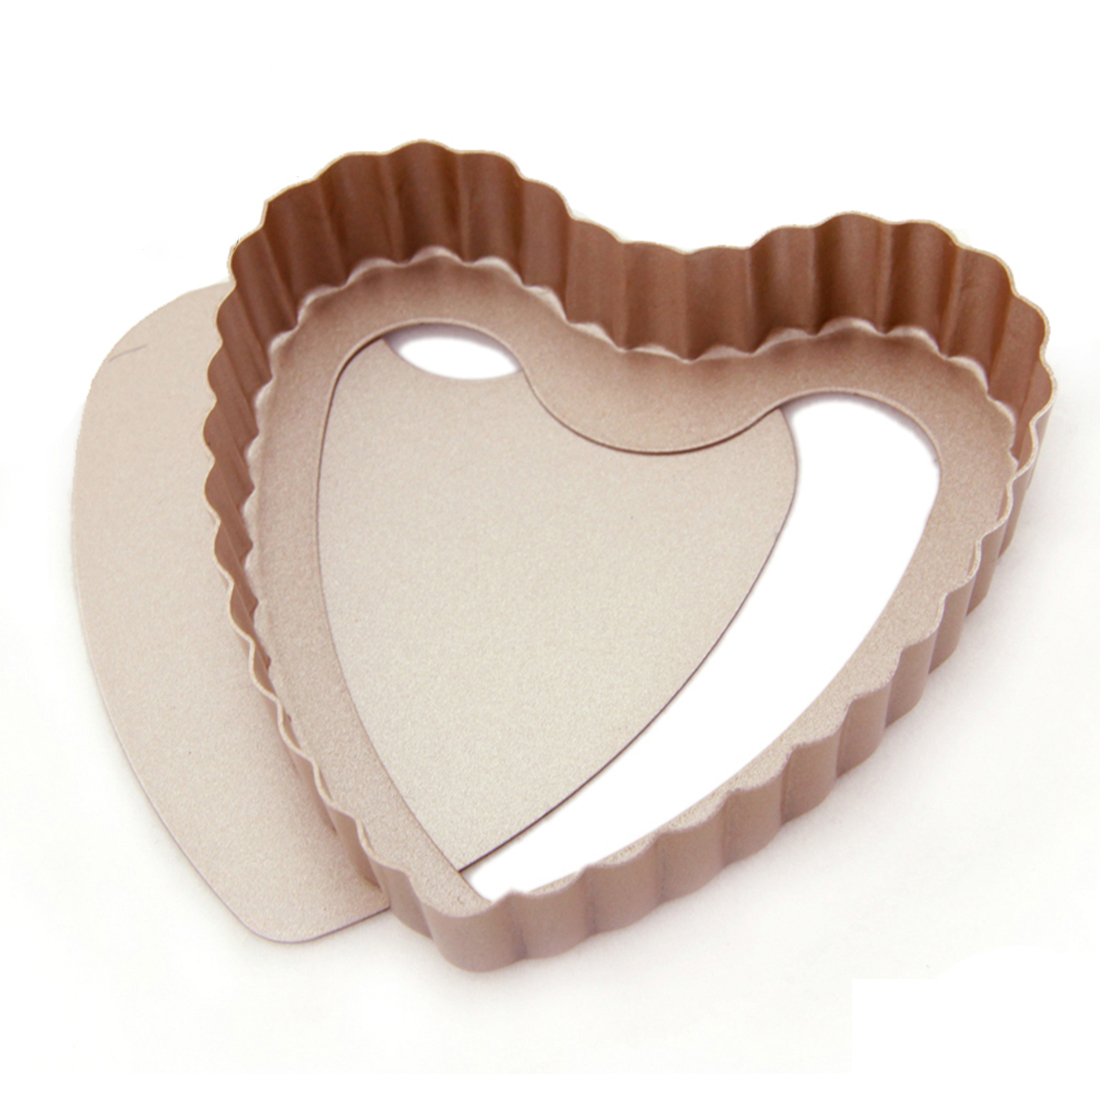 Cupcake Bread Heart Design Wavy Edge Baking Mold Mould Bakeware Pan Champagne Gold